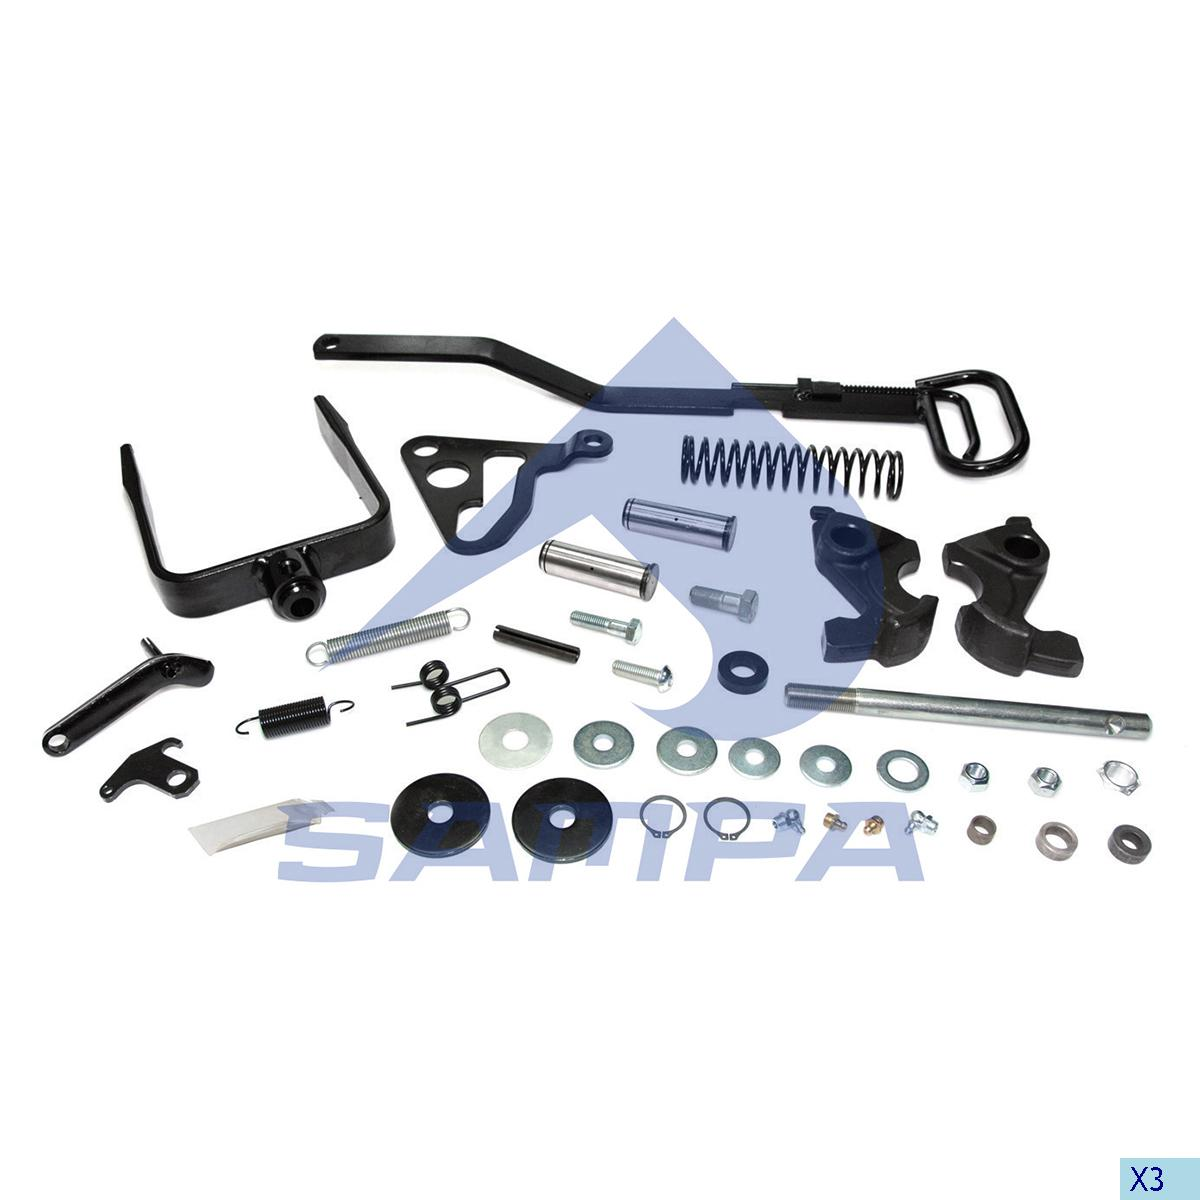 Repair Kit, Fifth Wheel, Holland, Complementary Equipment